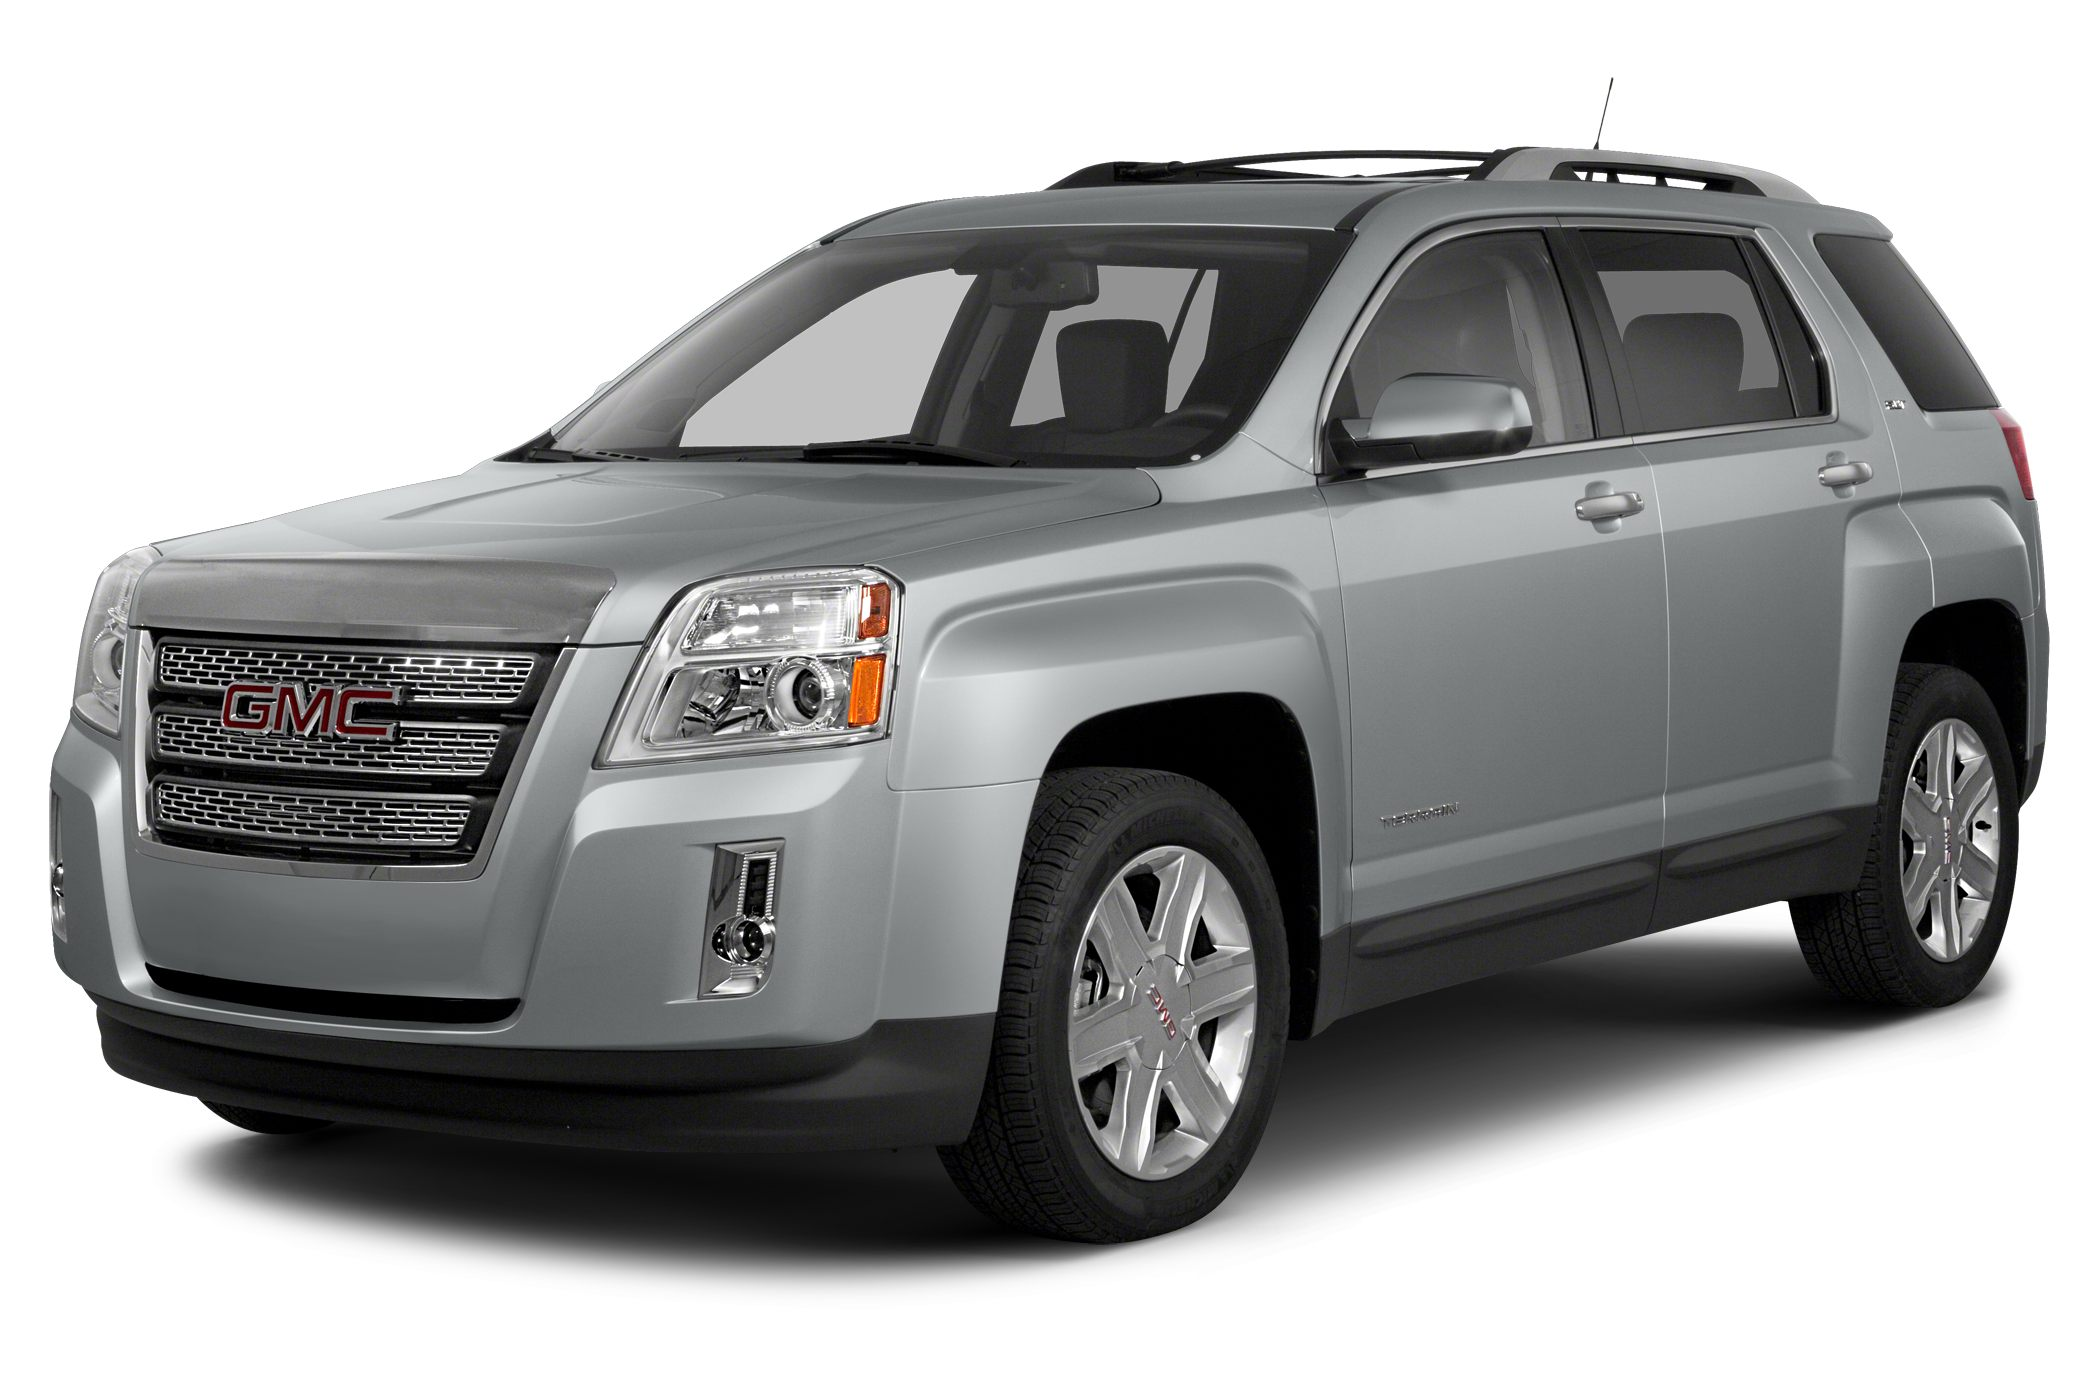 2014 GMC Terrain SLE-2 SUV for sale in Quarryville for $31,125 with 0 miles